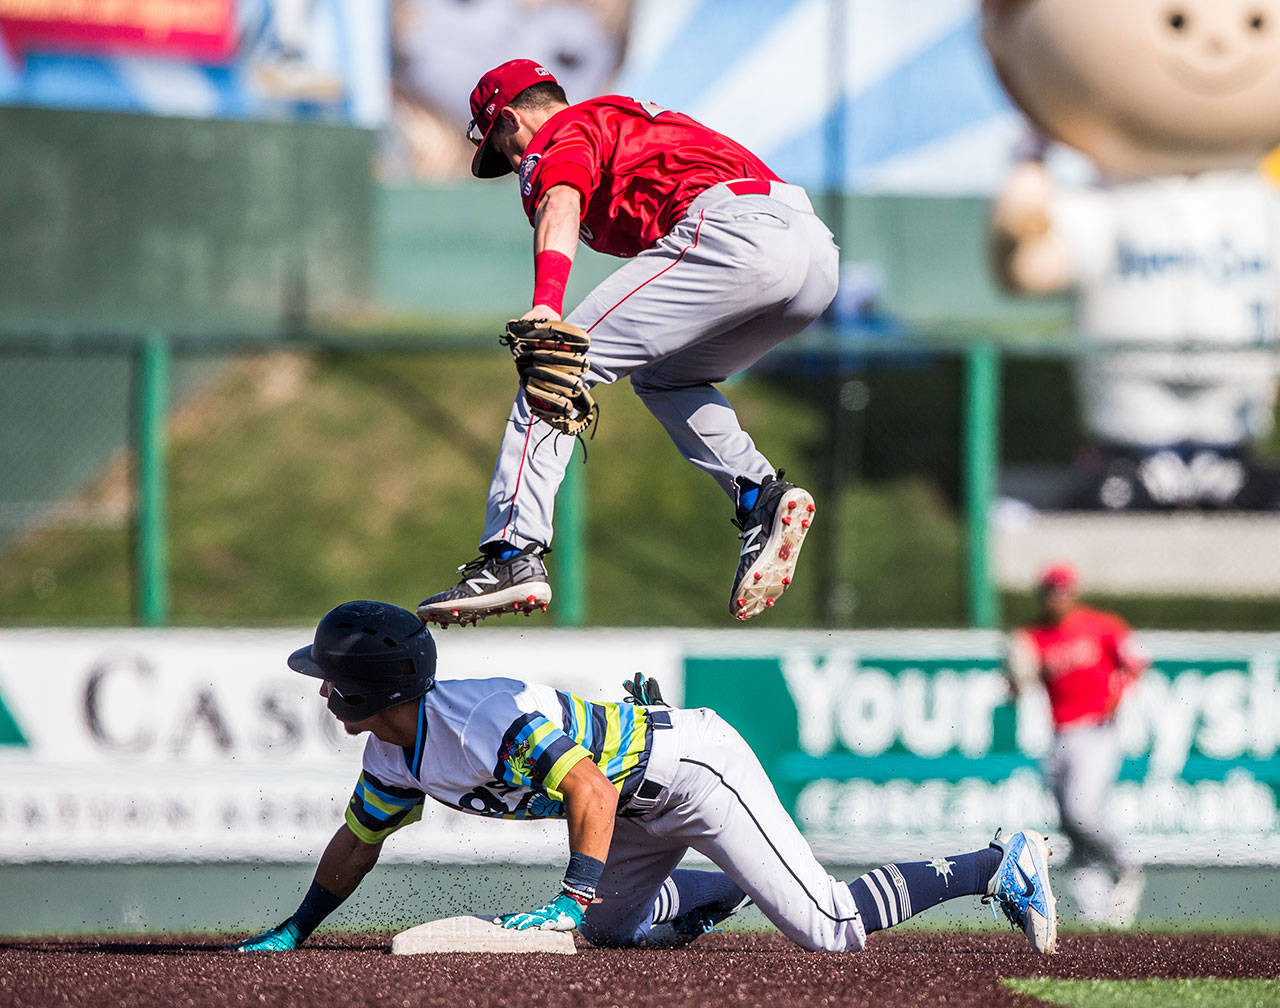 Spokane's Jake Hoover jumps over Everett's Cesar Izturis Jr. as he slides into second during the AquaSox 7-6, 10-inning victory over Spokane on Sunday at Funko Field in Everett. (Olivia Vanni / The Herald)